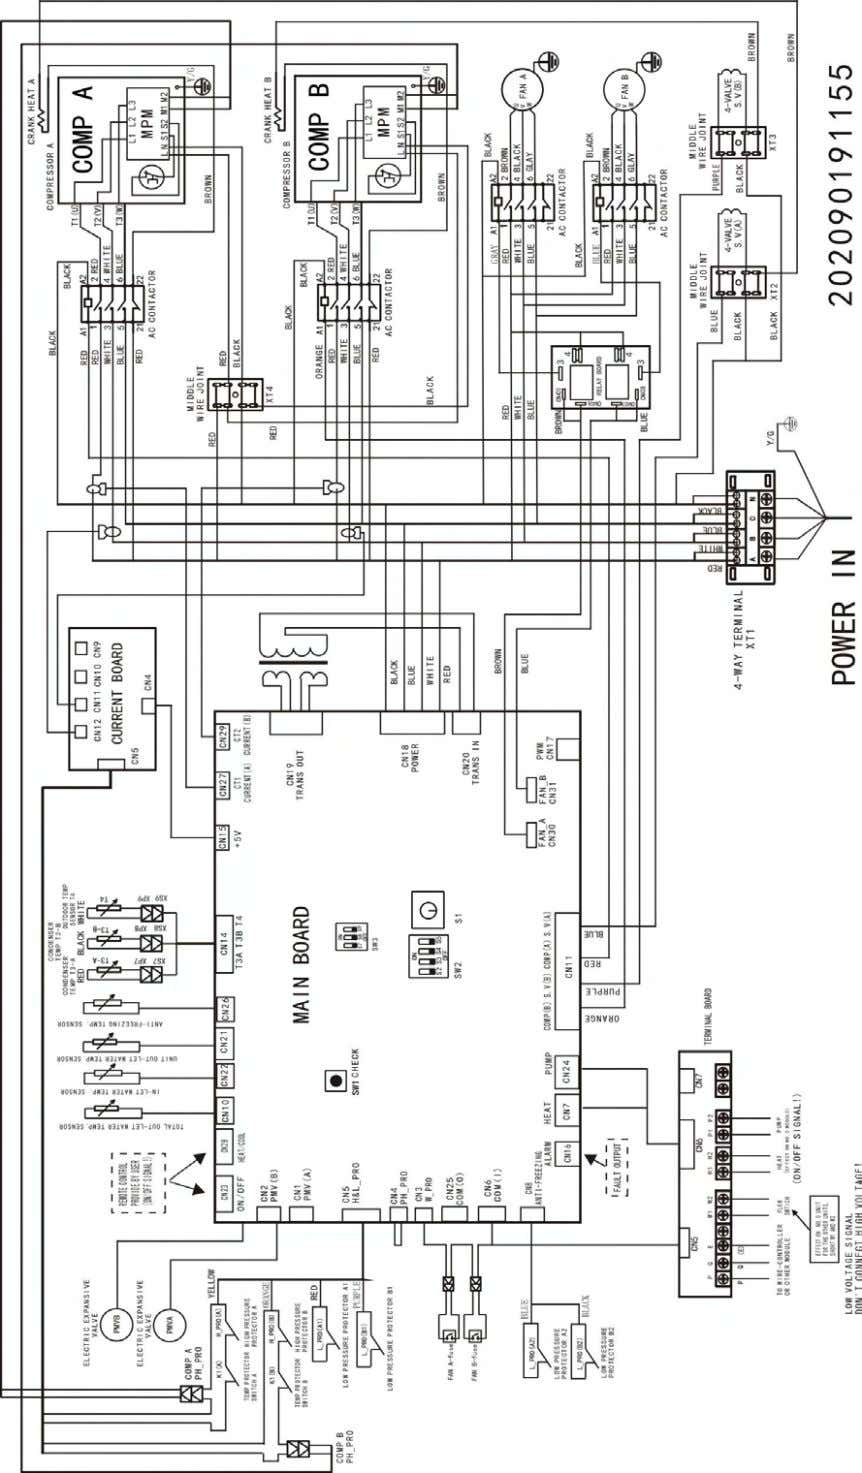 Aqua Tempo Super Series air cooled scroll chiller unit (50Hz) MCAC-ATSM-2013-05 130kW module 18 Wiring Diagrams